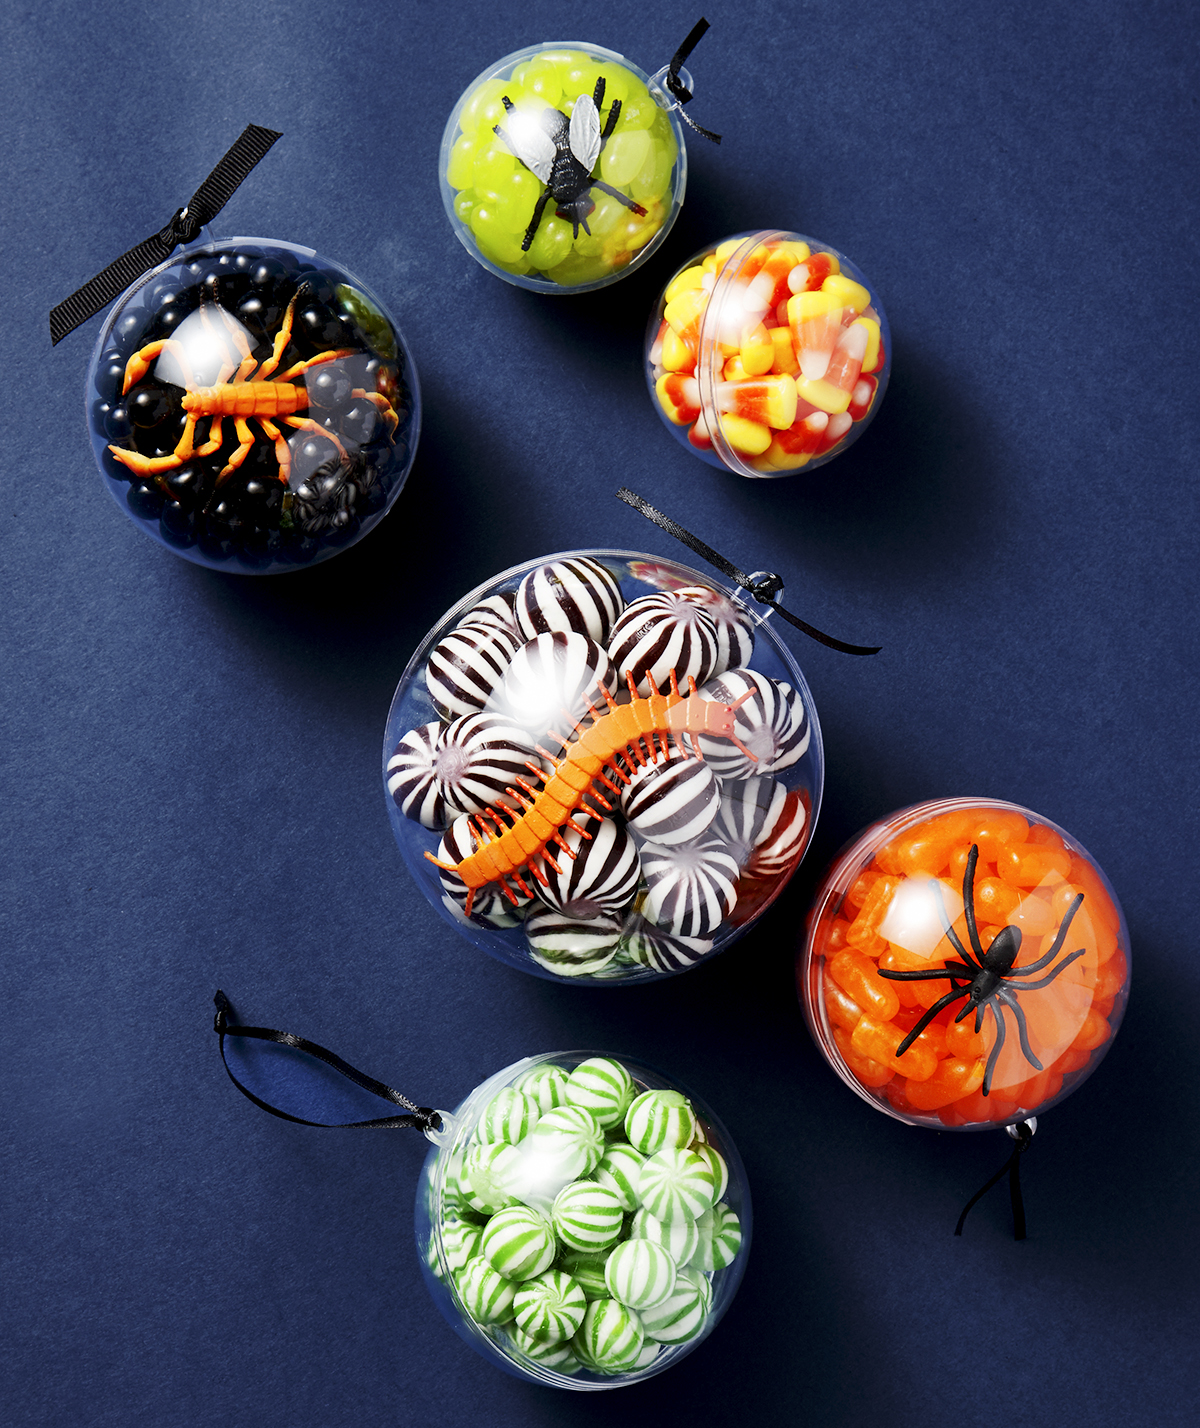 DIY Halloween Decorations Made from Old Things